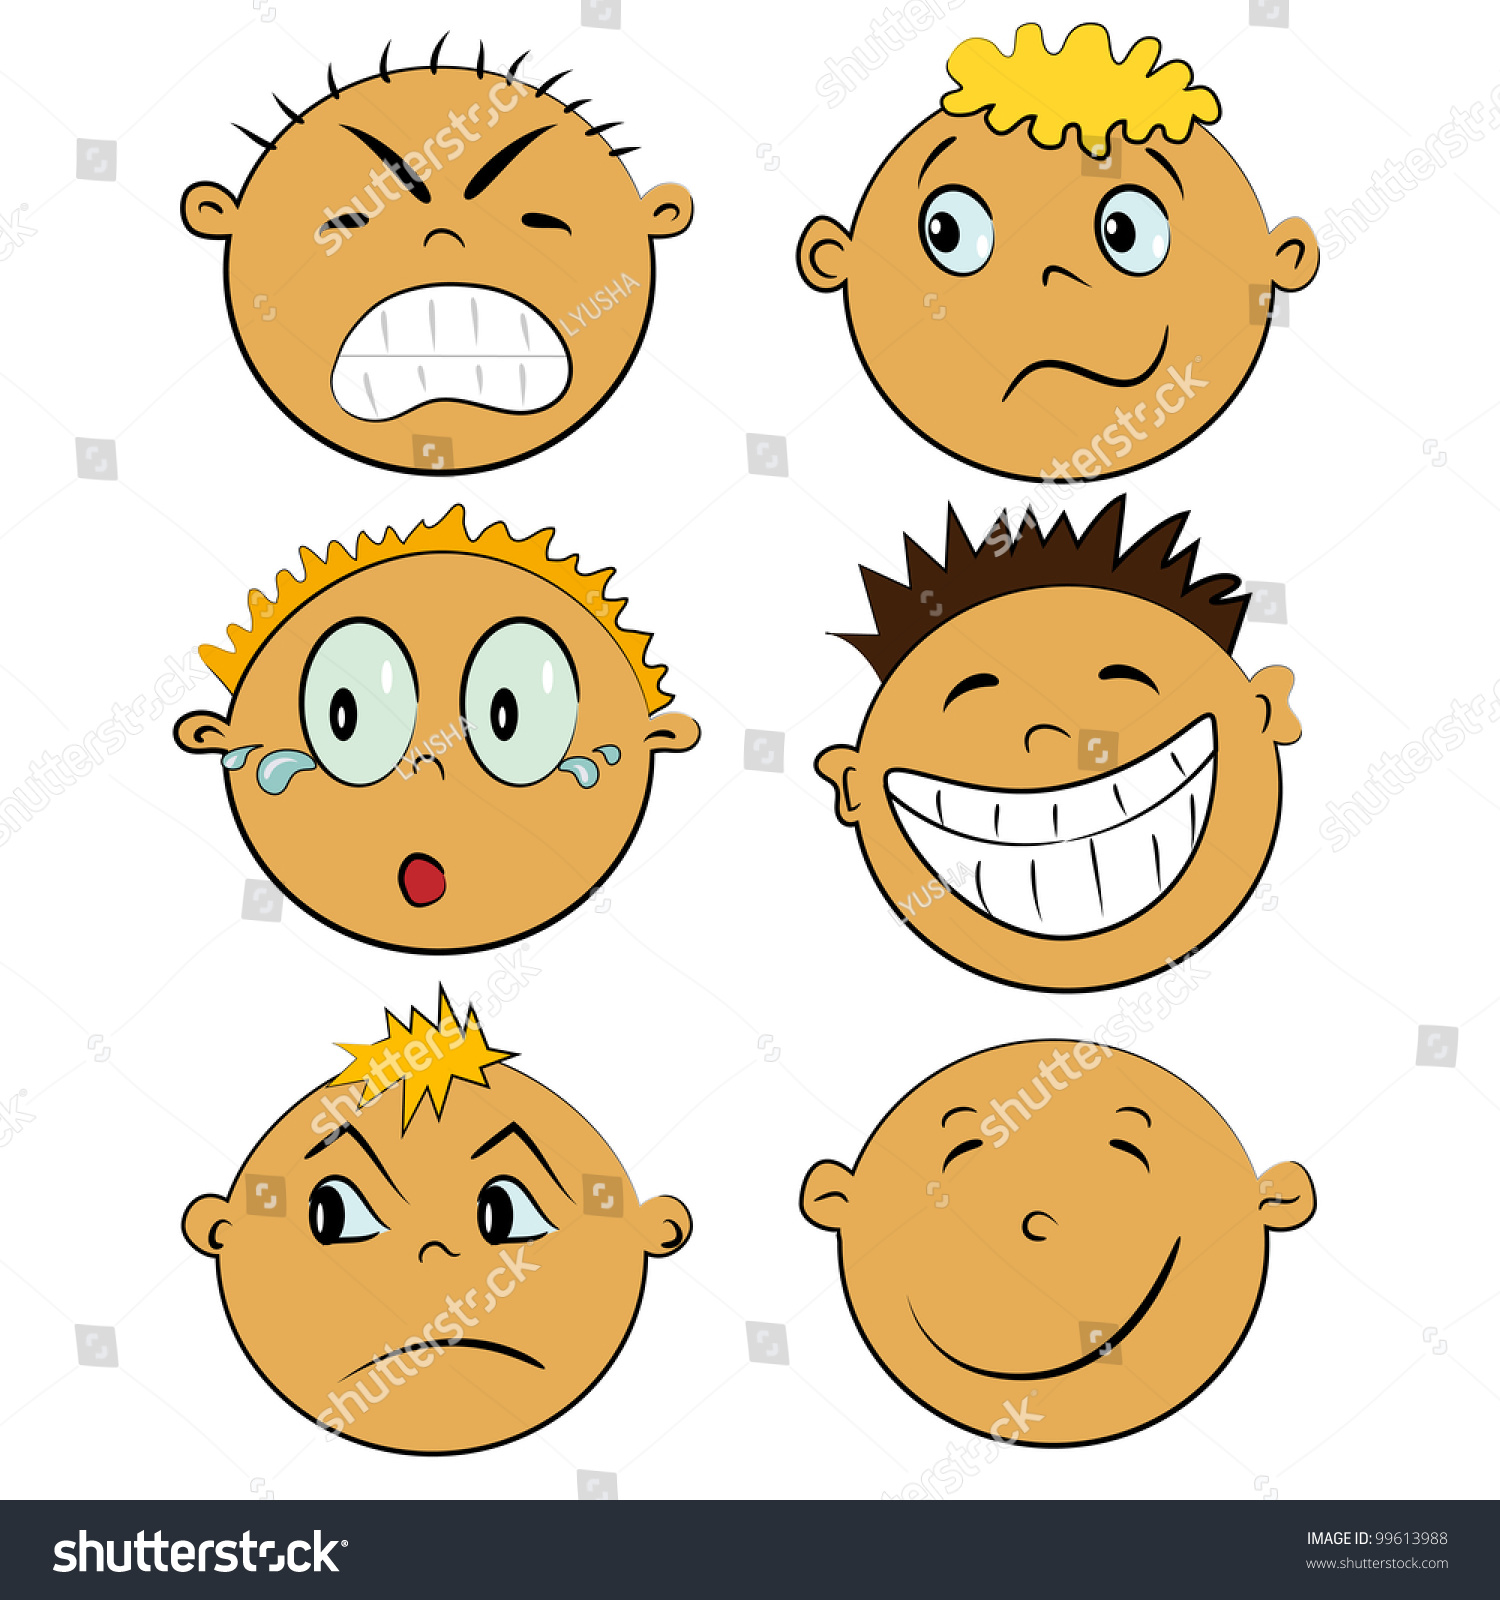 Printables Emotion Faces emotion faces set cartoon children emotions stock vector 99613988 collection